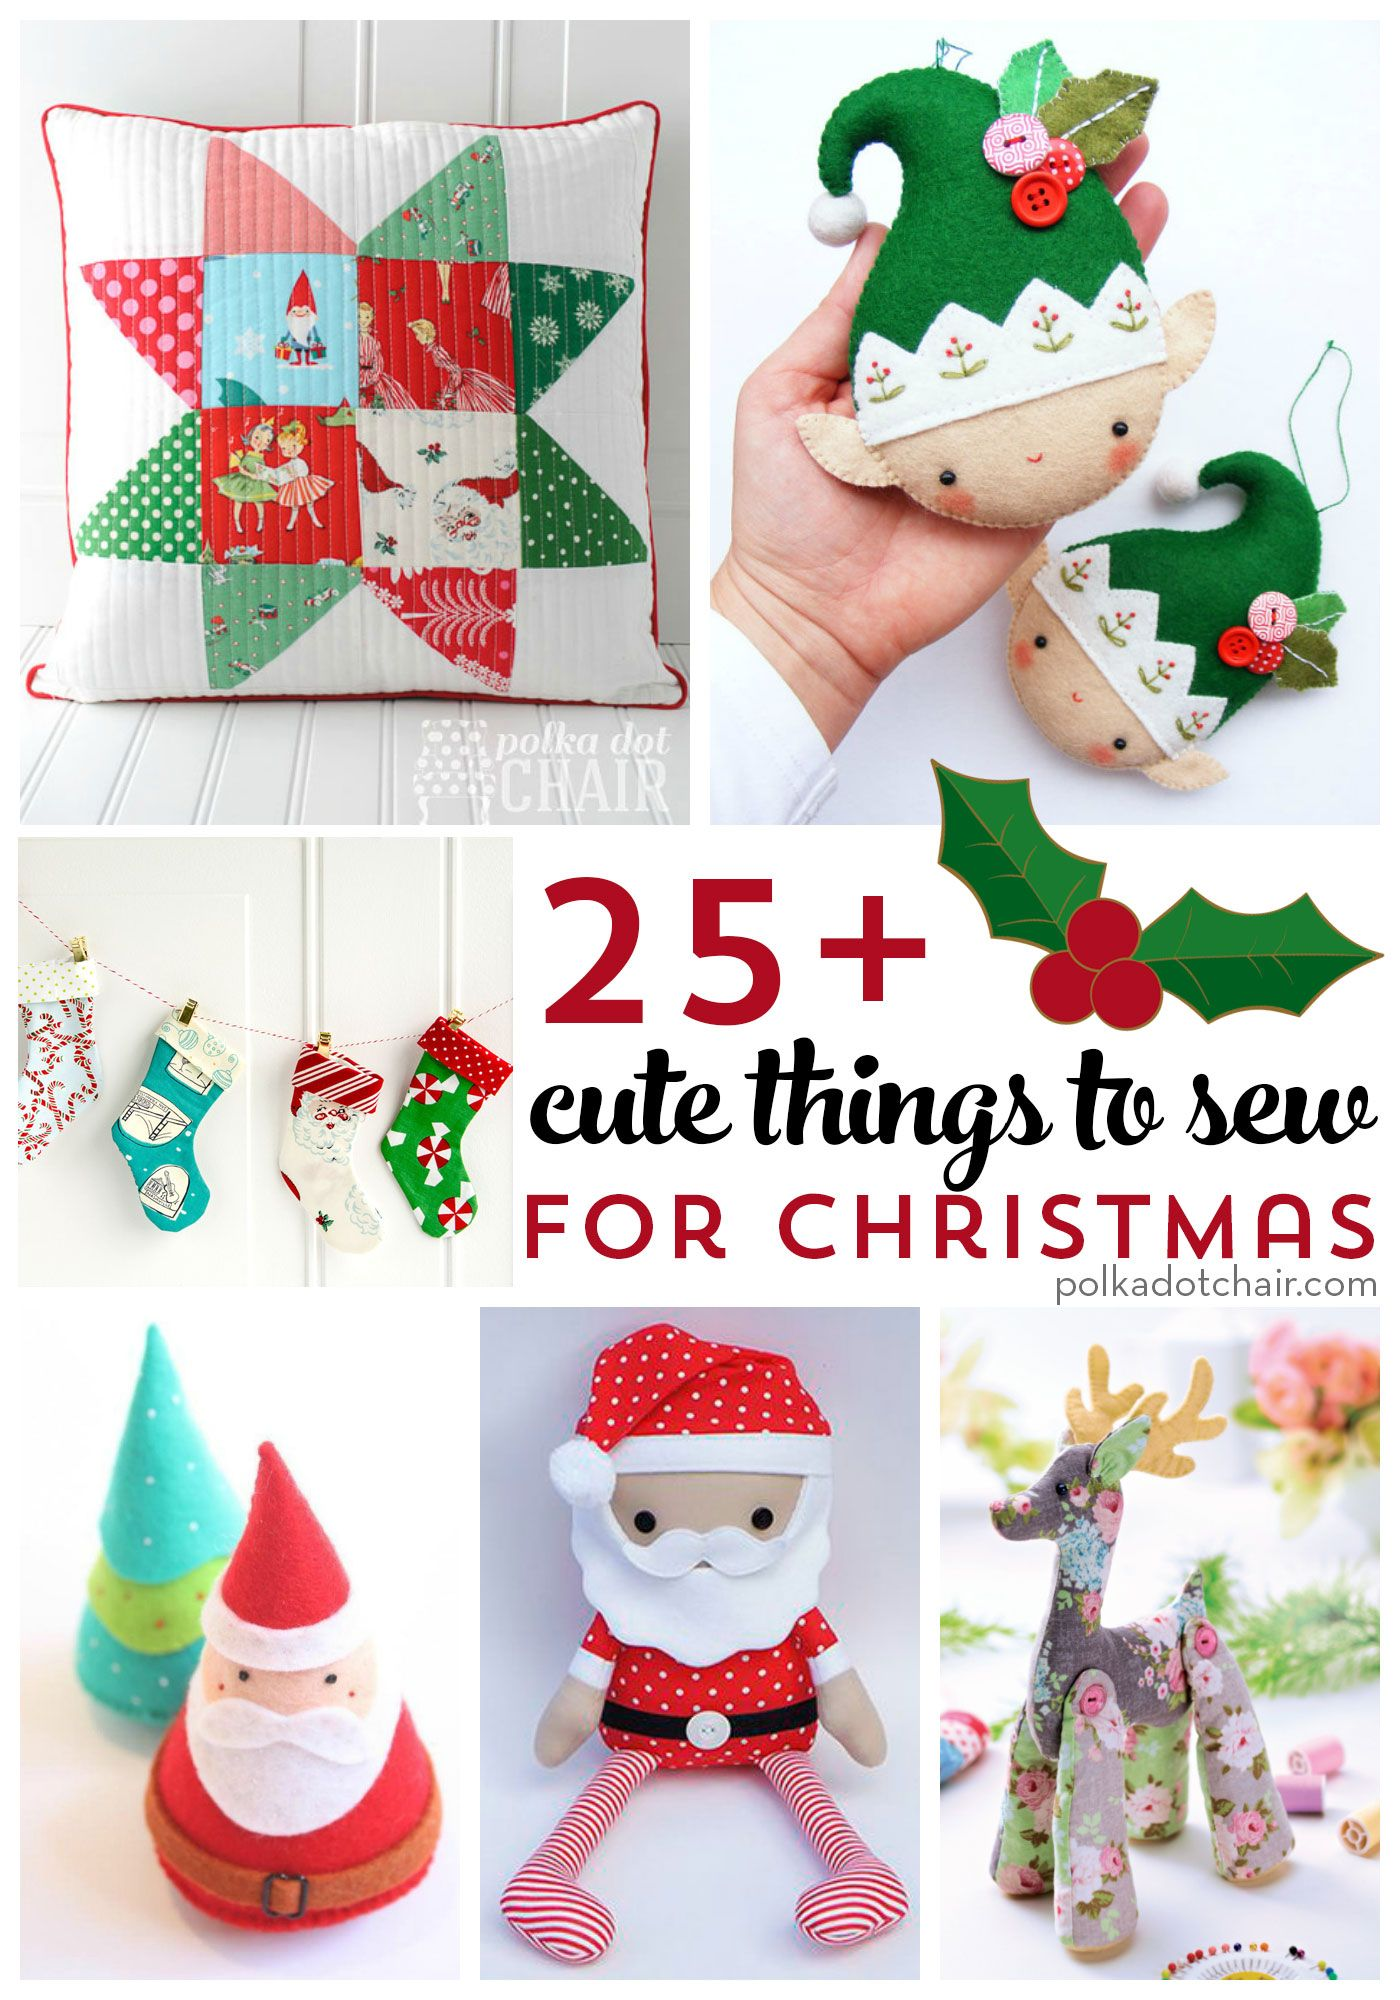 More than 25 Cute Things to Sew for Christmas | INSPIRATION: Sewing ...